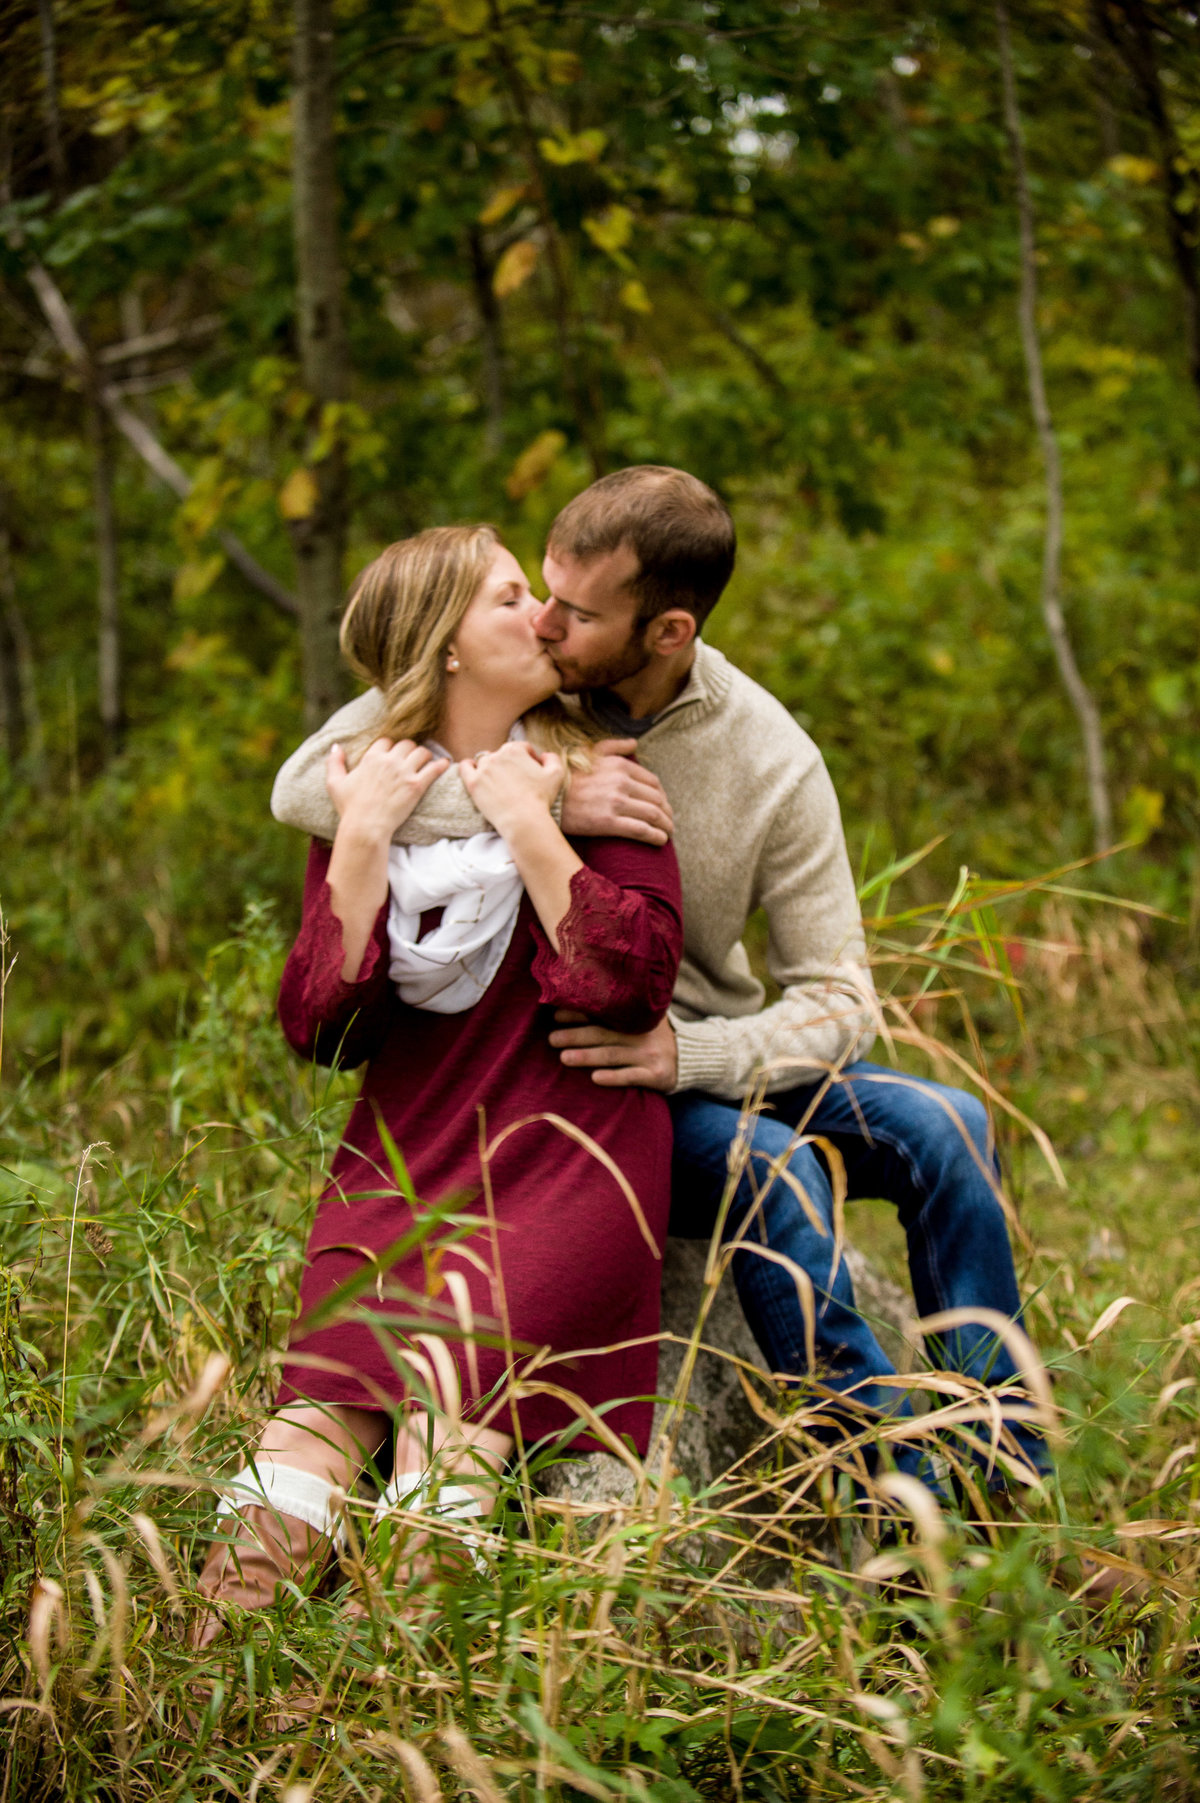 Bri & Wyatt - Minnesota Engagement Photography - Lebanon Hills Regional Park - RKH Images  (183 of 200)